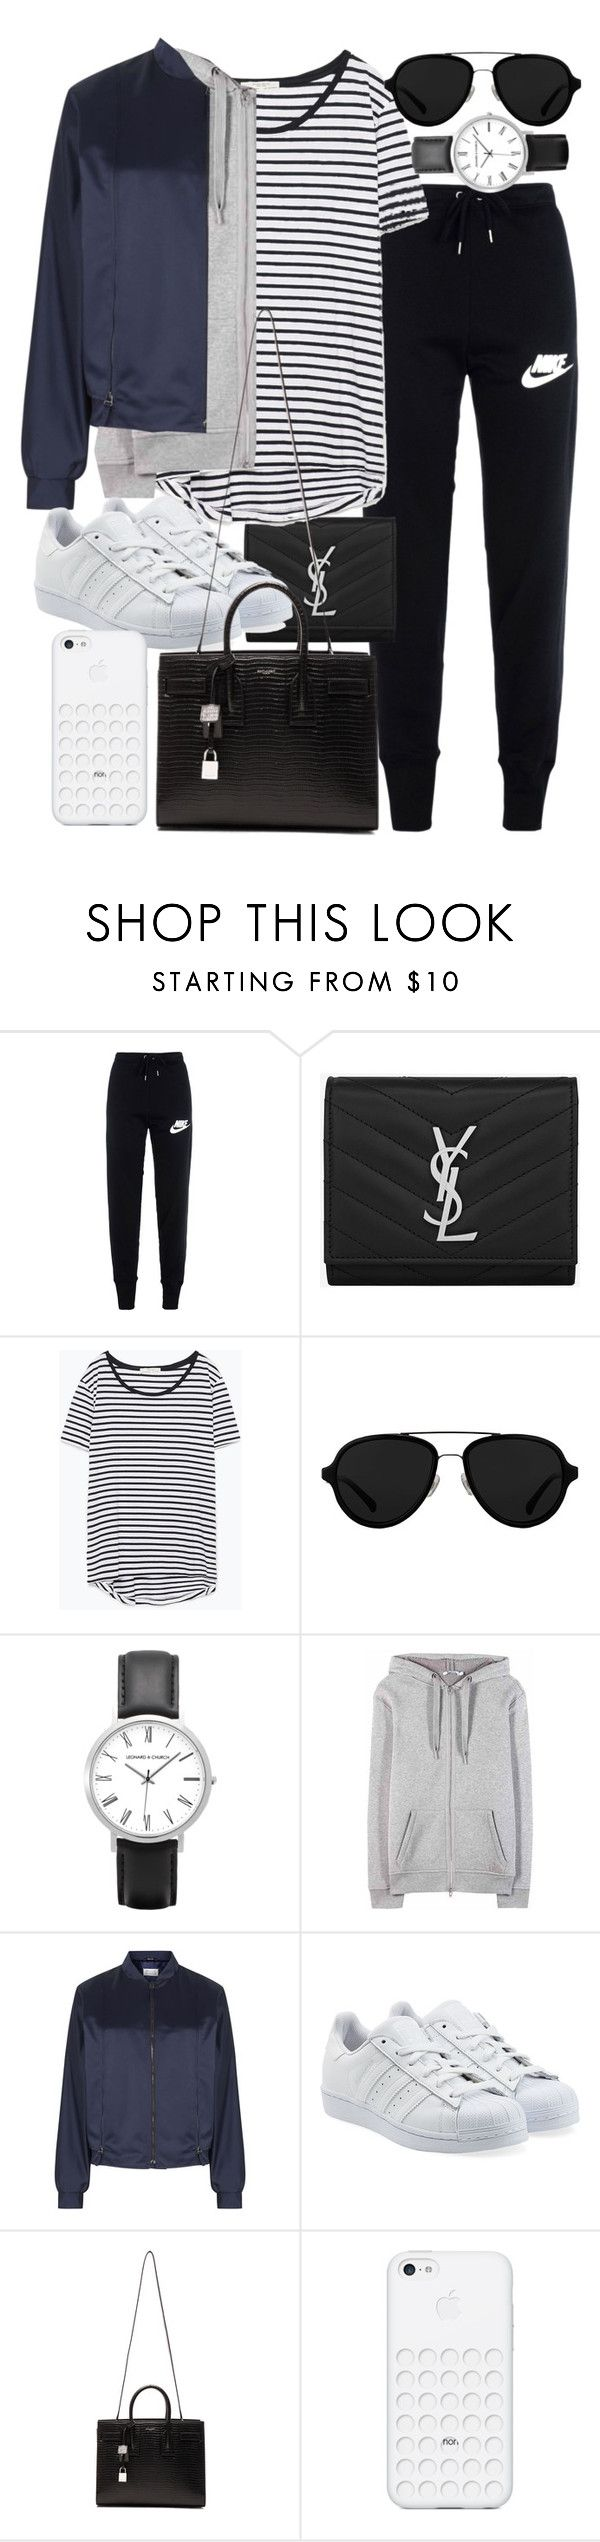 """Untitled #19476"" by florencia95 ❤ liked on Polyvore featuring NIKE, Yves Saint Laurent, Zara, 3.1 Phillip Lim, T By Alexander Wang, Maison Margiela and adidas Originals"